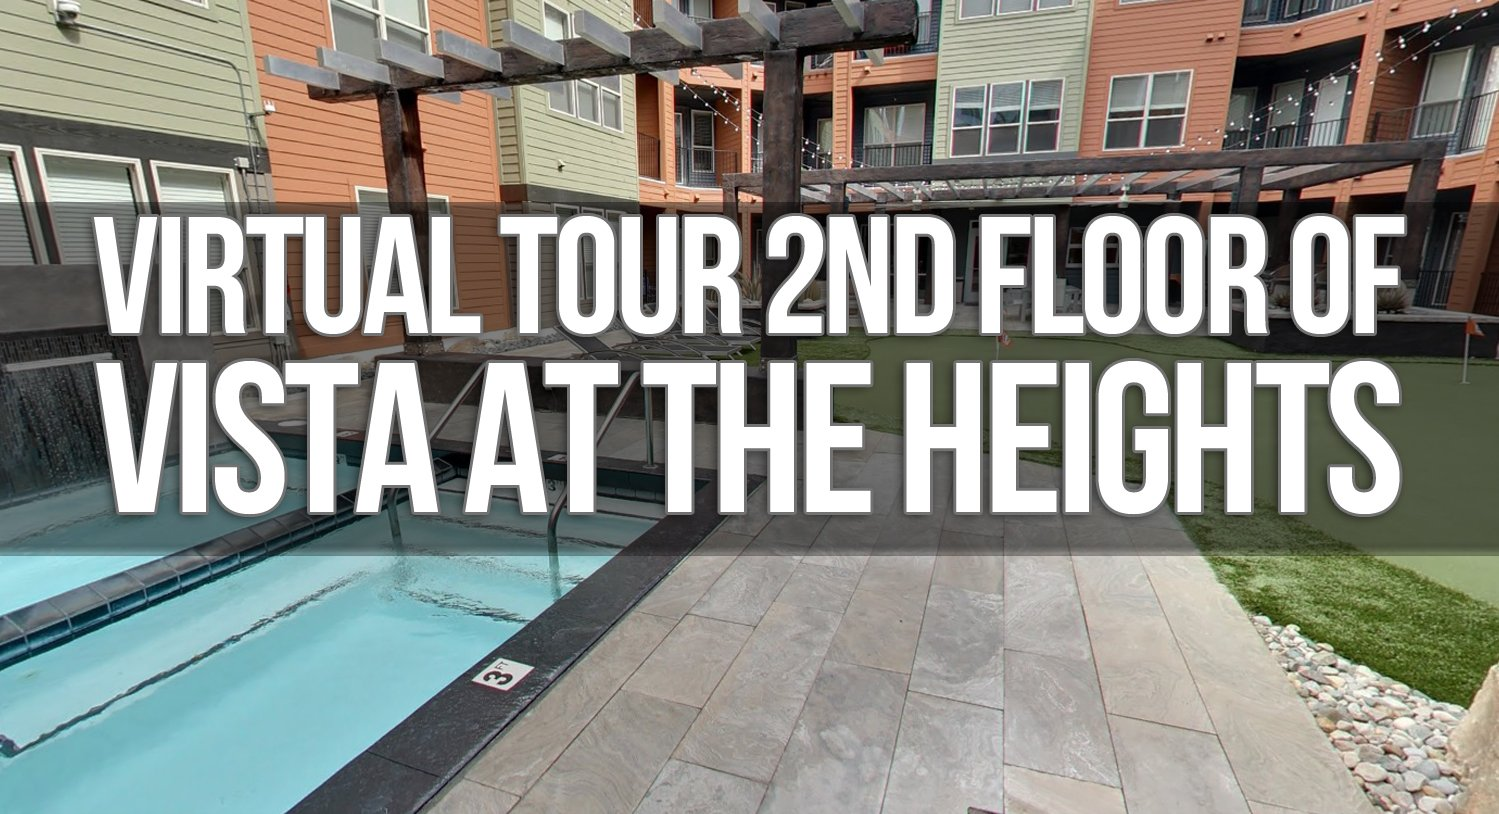 Virtual Tour of 2nd Floor at the Vista at the Heights Apartments